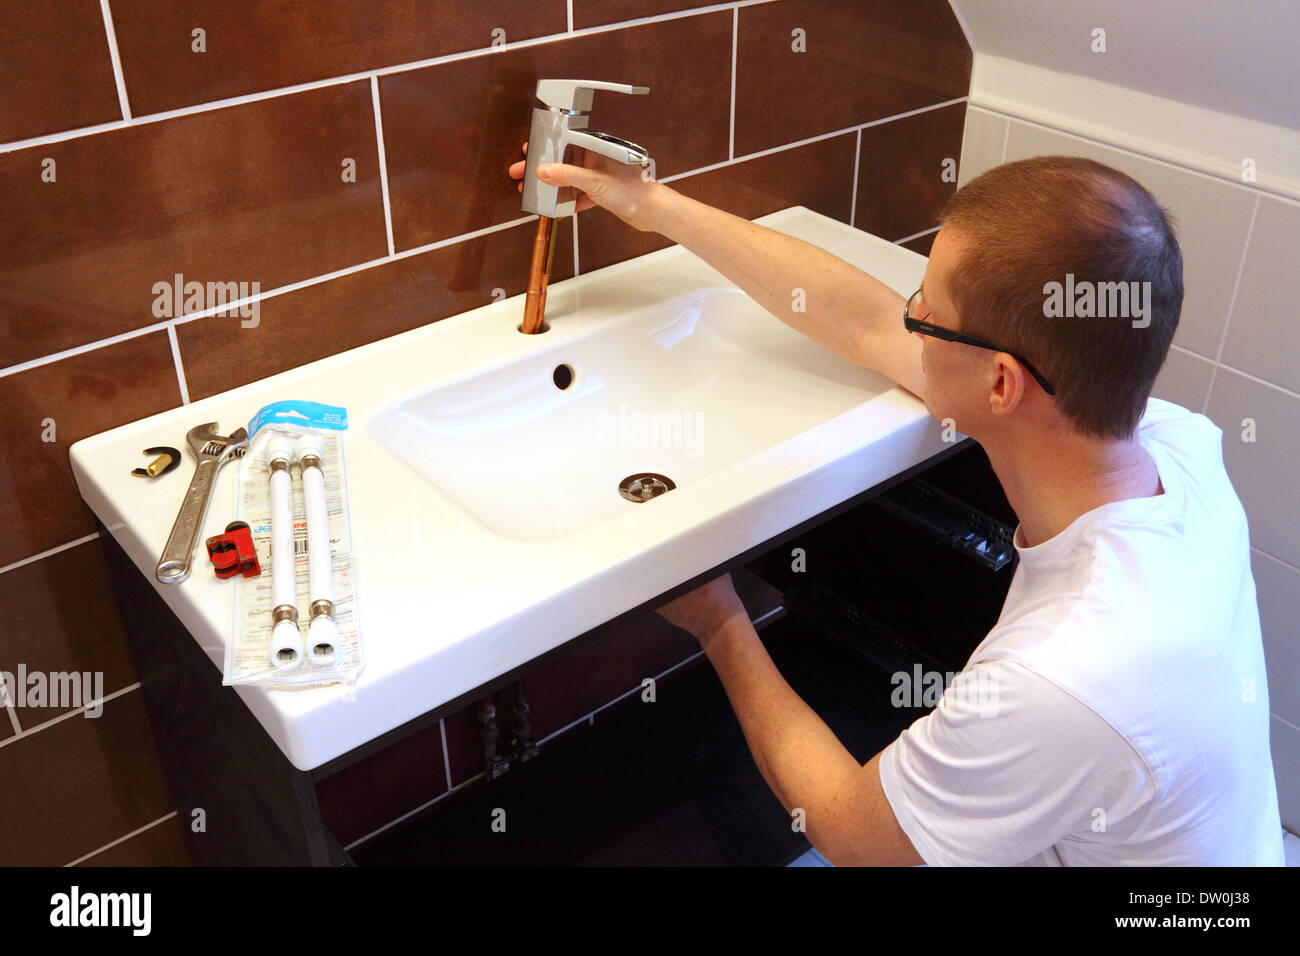 DIY Plumber Fitting A Tap During A New Bathroom Renovation Stock - Plumber bathroom renovation